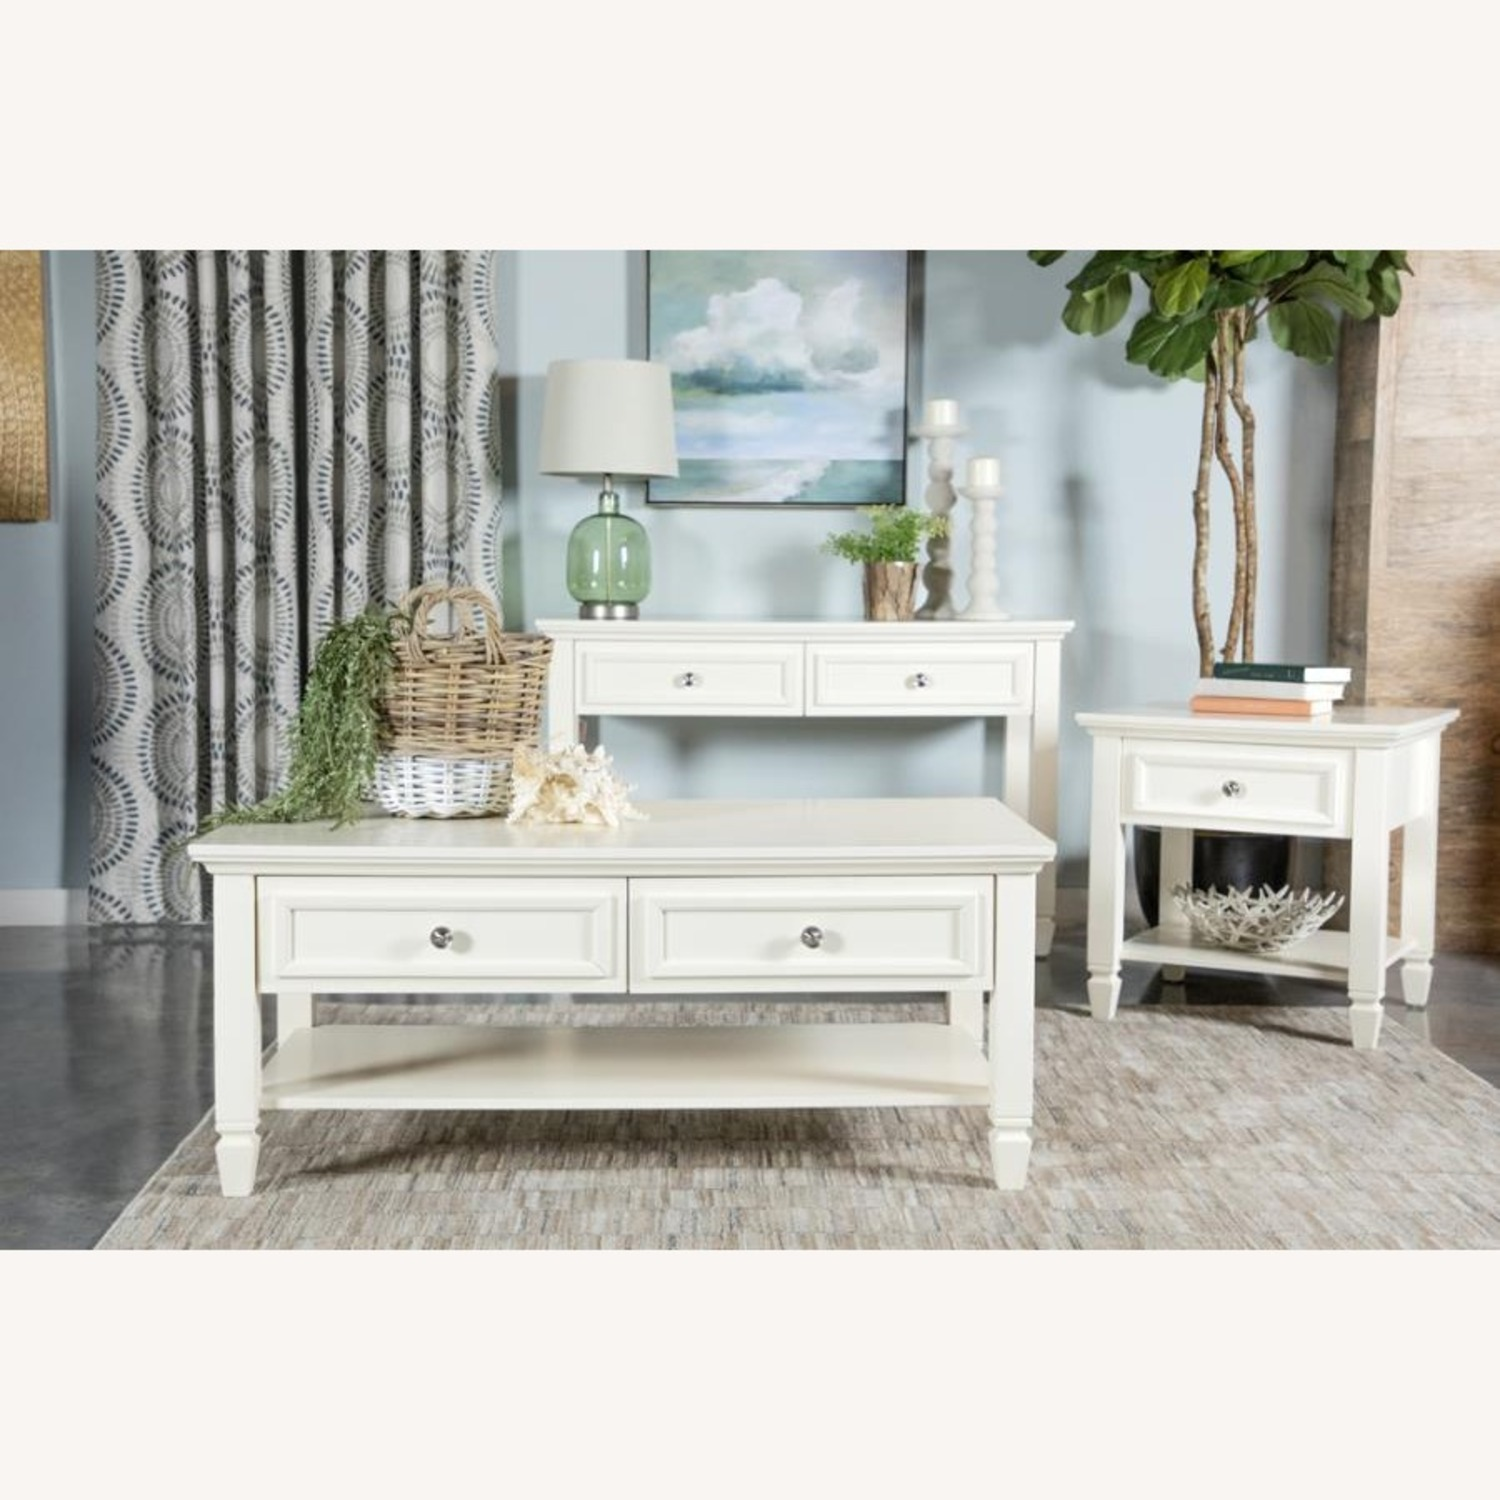 Coffee Table In Brushed Nickel W/ 2 Drawers - image-3